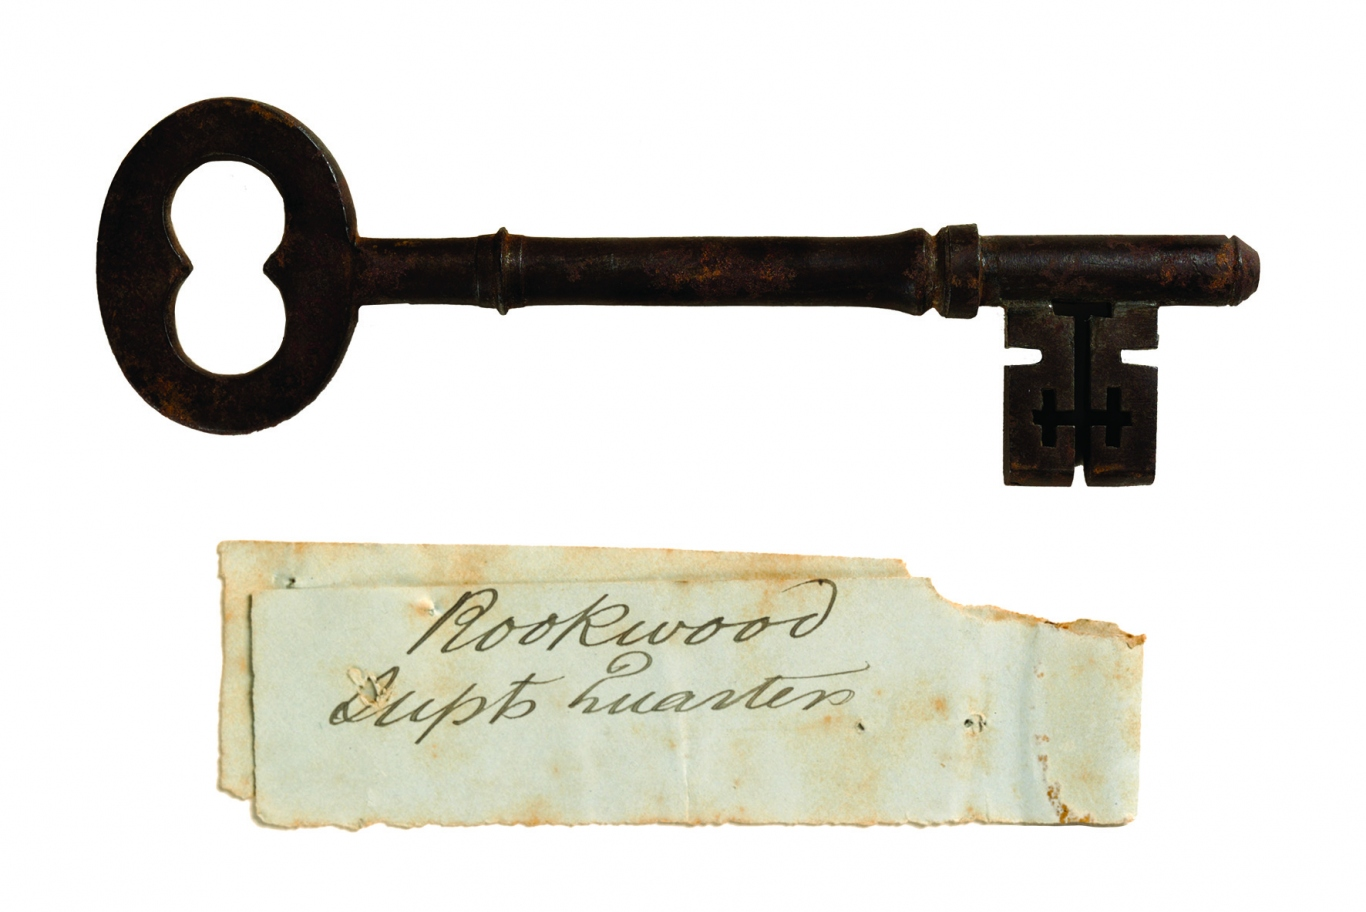 Large metal key and handwritten label that reads: Rookwood Supt. Quarters.